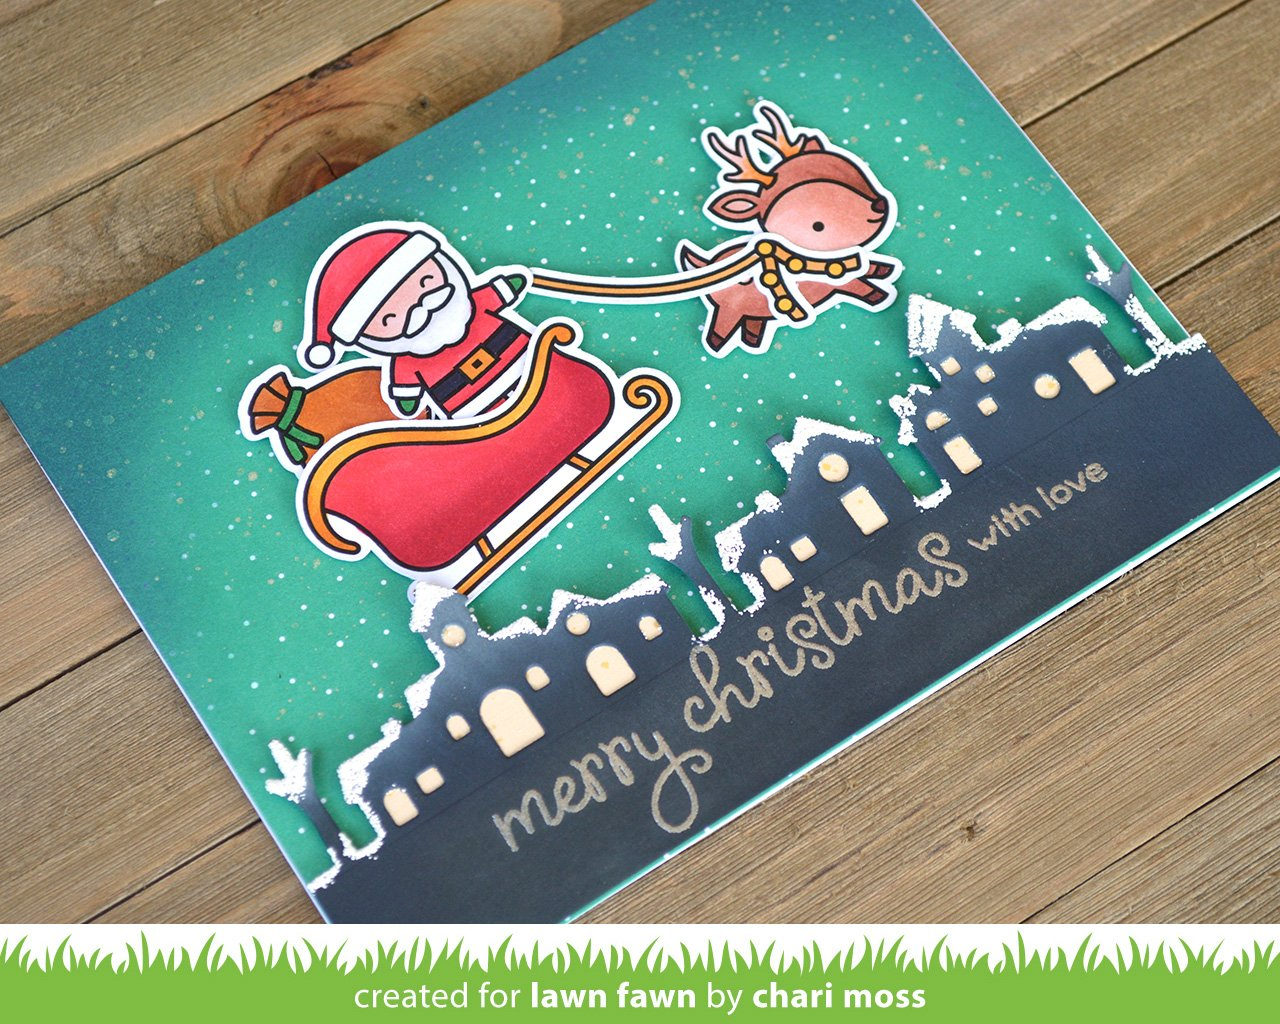 Lawn Fawn Ho-Ho-Holidays 4x6 Clear Stamp Set LF2029